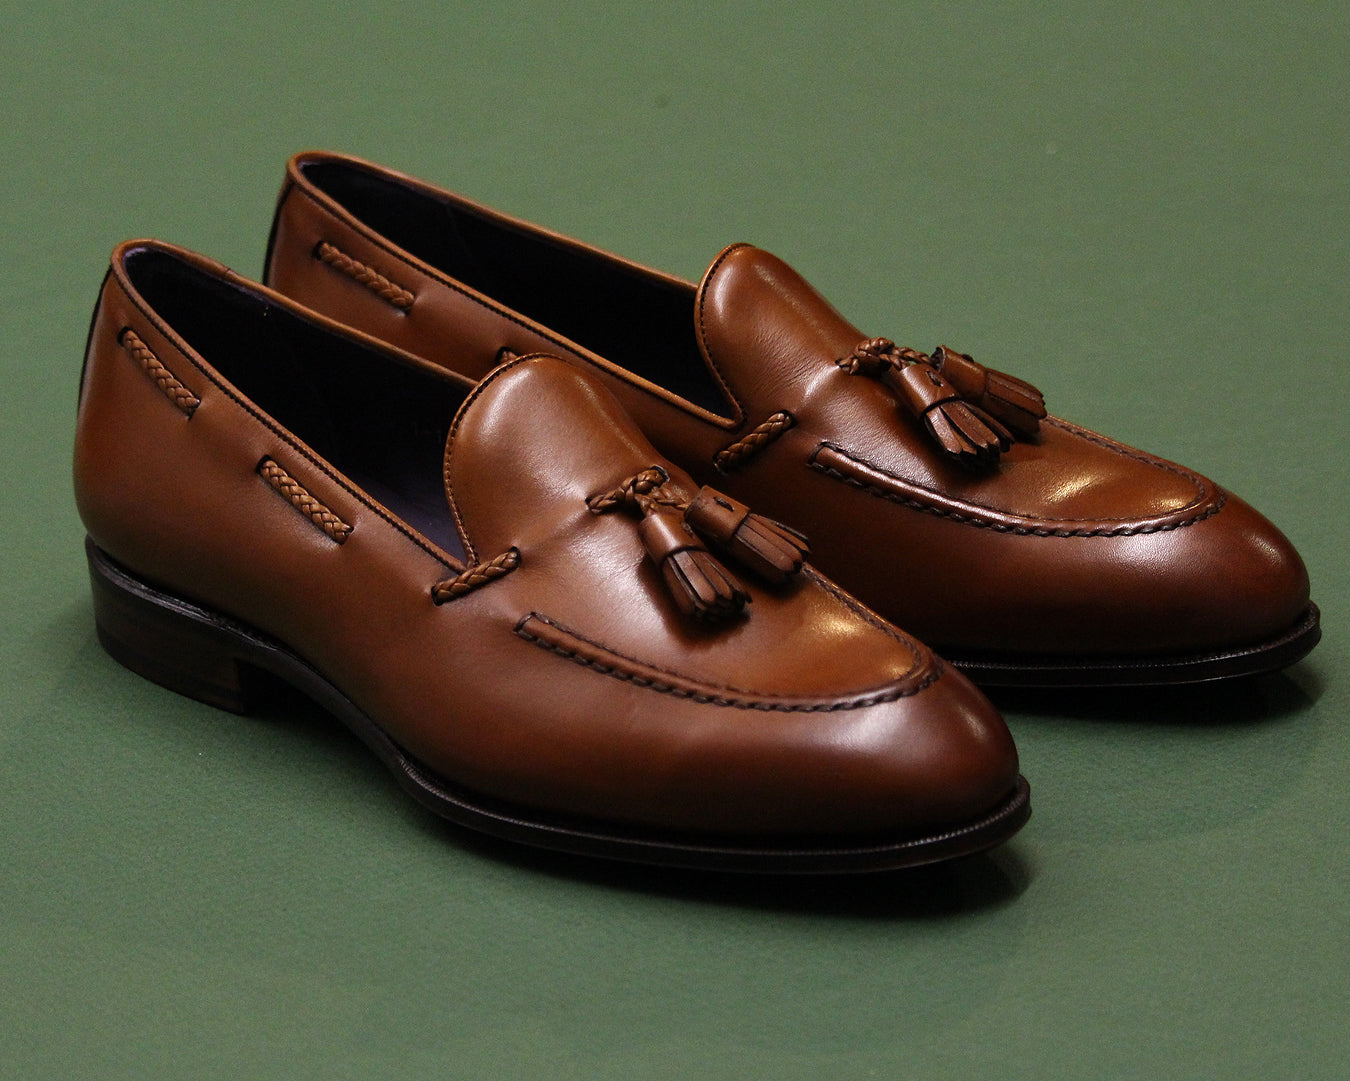 Tassel Loafers 80371 on the Uetam Last with leather soles.